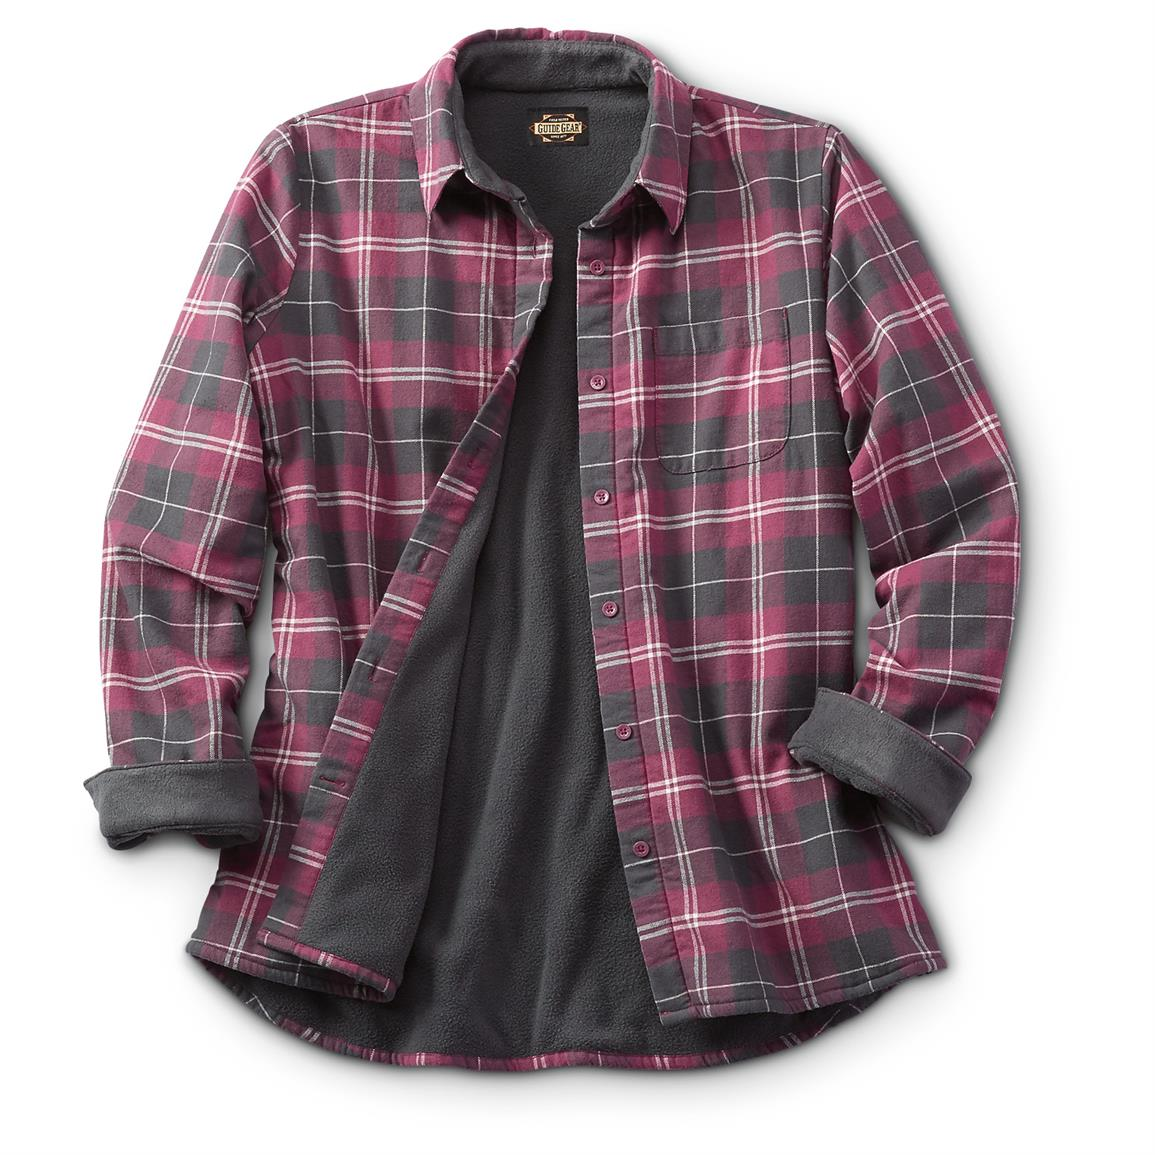 flannel shirts guide gear womenu0027s fleece-lined flannel shirt, wine GSBRFUJ